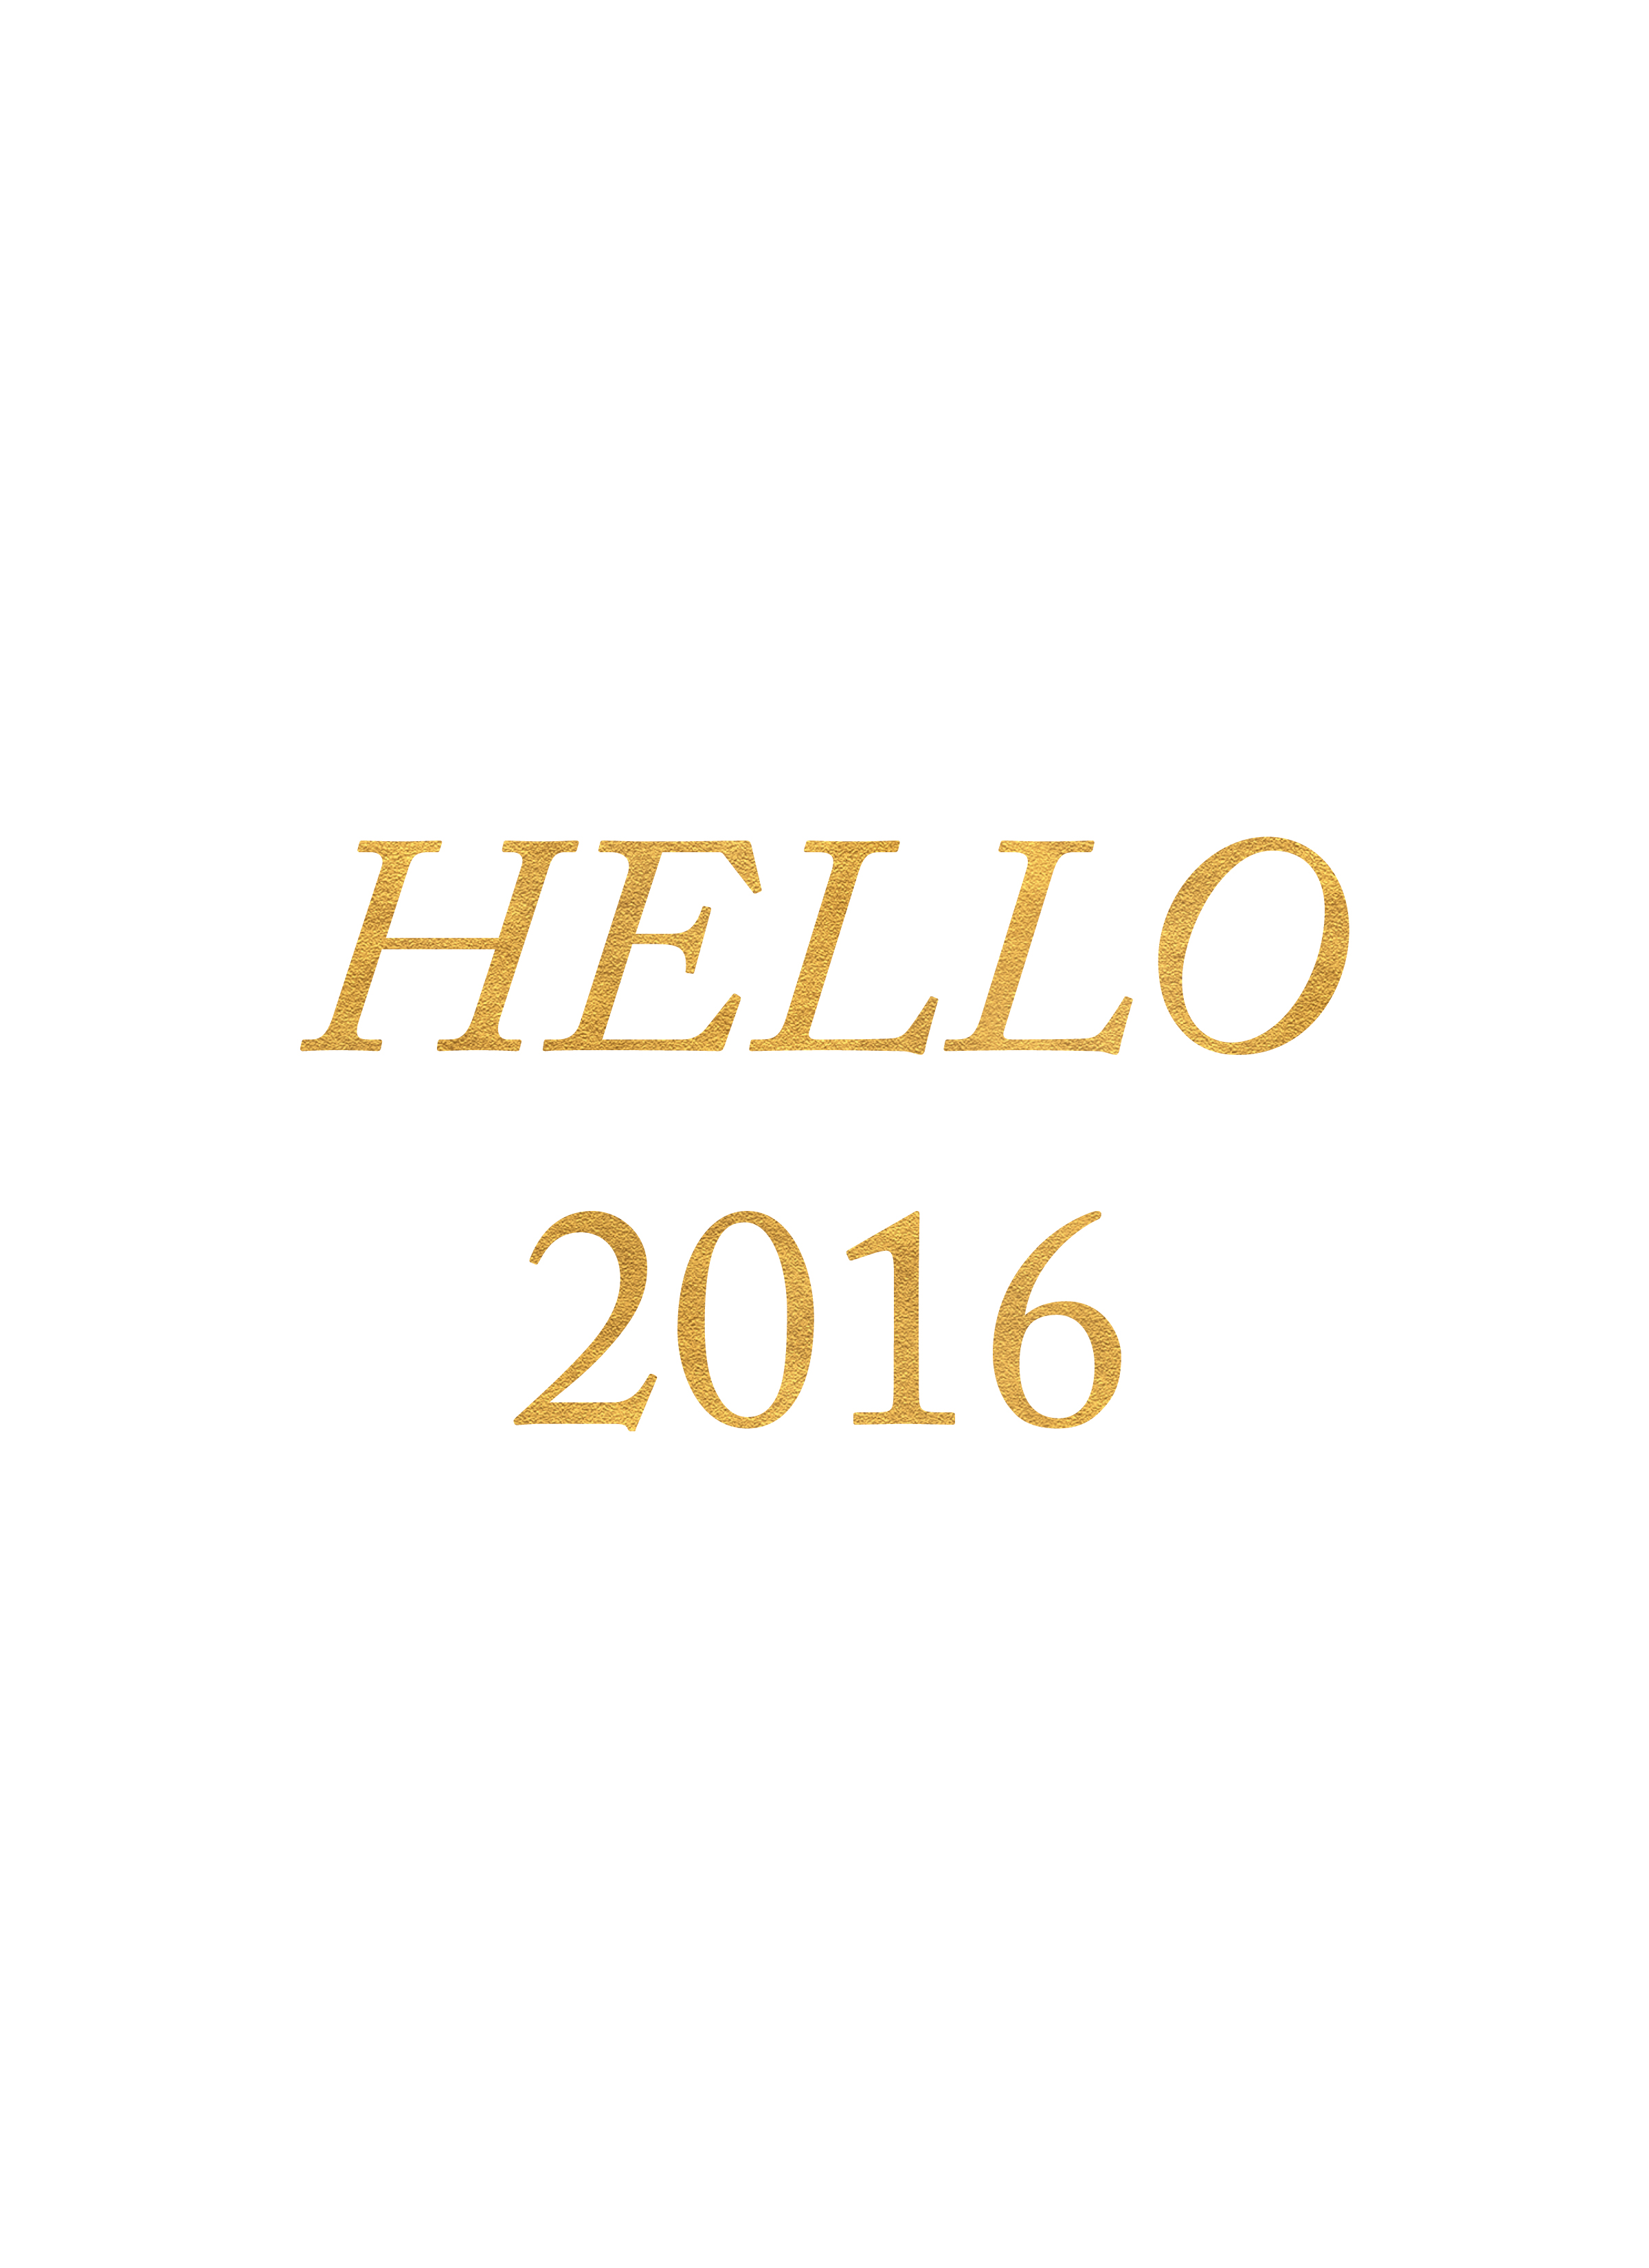 Hello 2016, Mantra Monday and goal chatting on the MKKM Blog